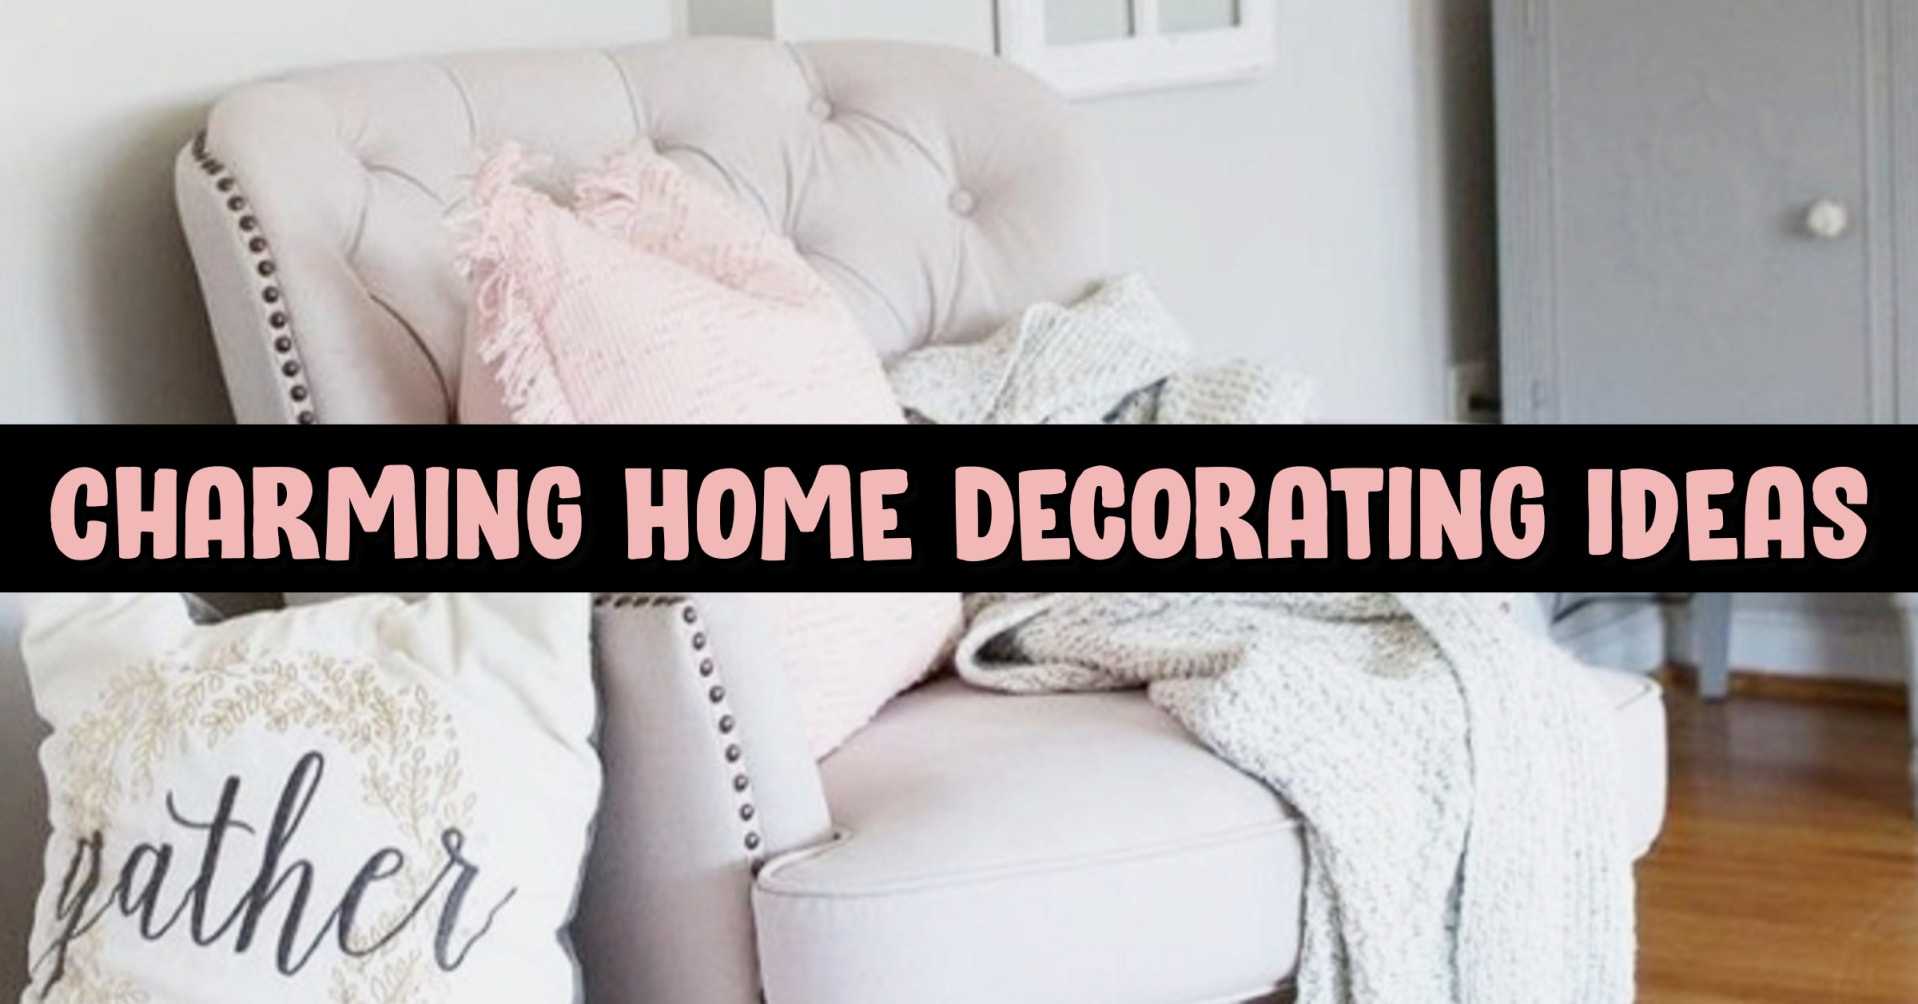 Home Decor on a Budget - Charming house decorating ideas for home decorating on a budget - best charming home decor ideas on Pinterest including french country decorating, charming and sophisticated living rooms (and gorgeous elegant small living room ideas in farmhouse cottage decor style and traditional country decor) - romantic decorating ideas with charming house decoration items for your small cozy home or apartment